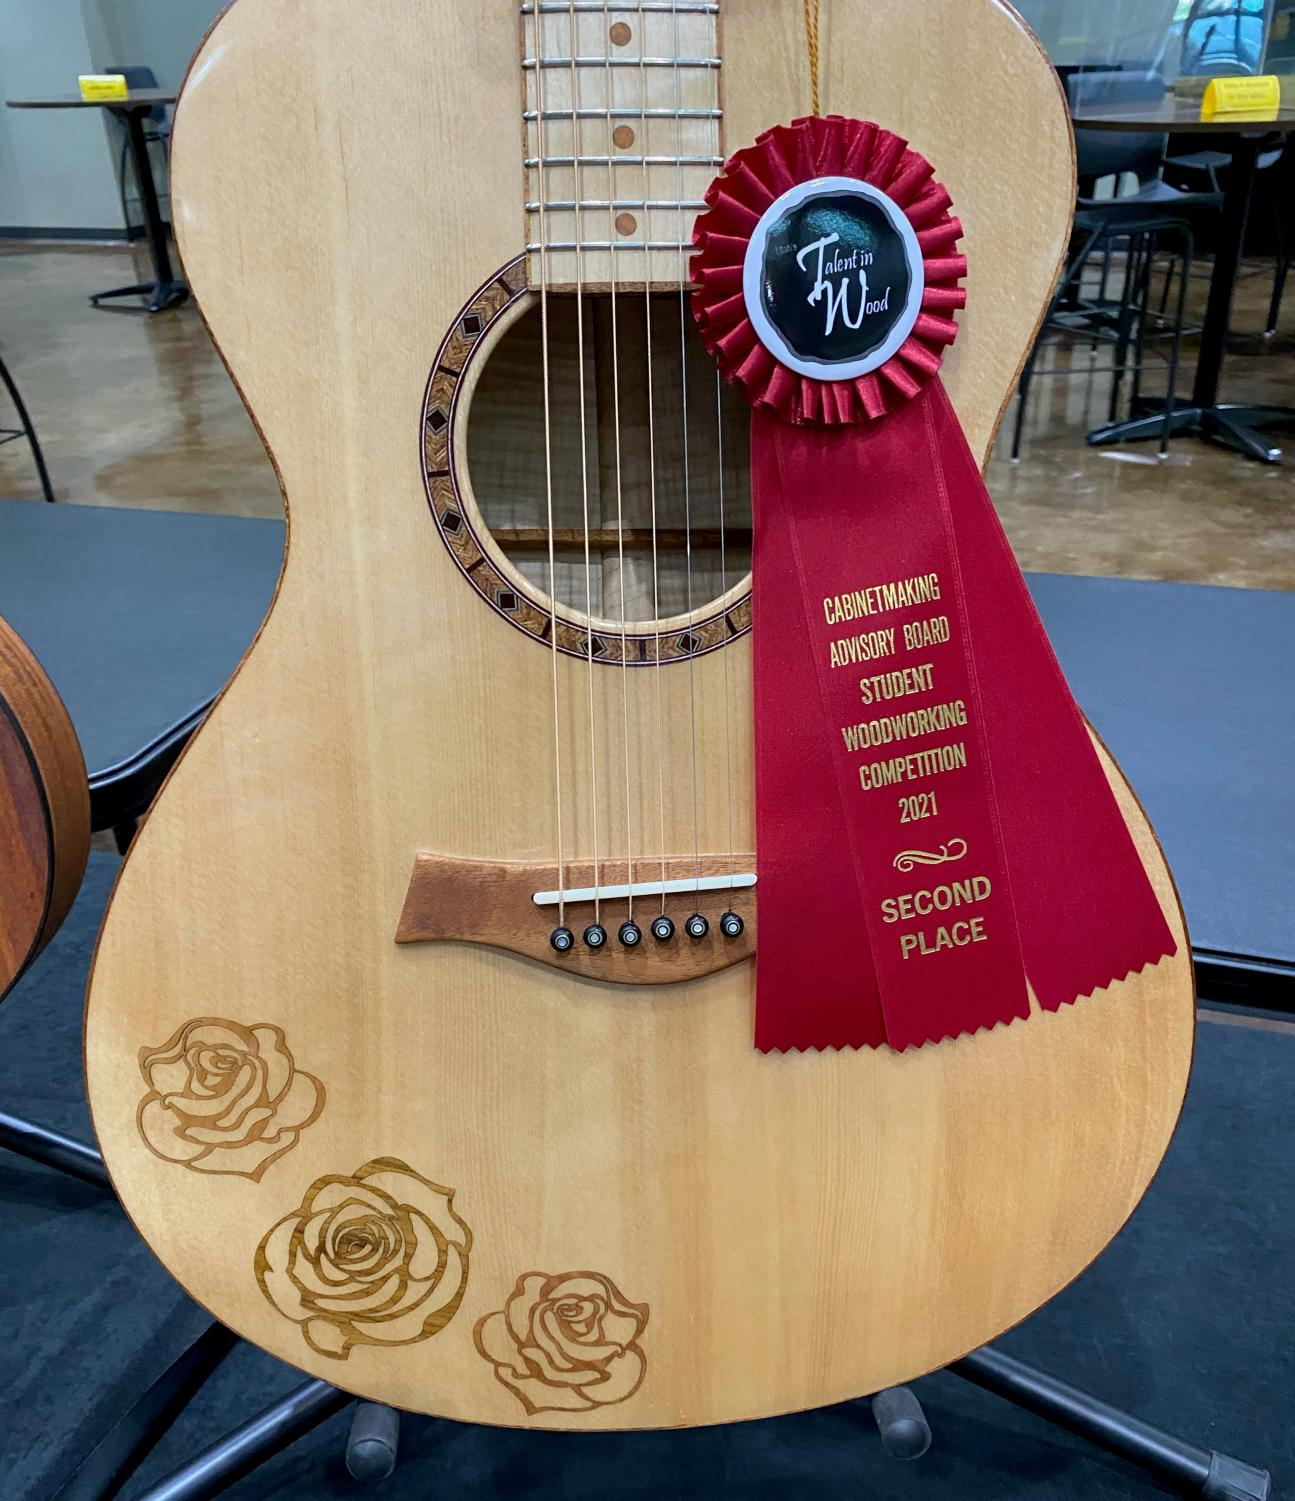 Alta+Woodworking+Students+Place+in+Utah%27s+Talent+in+Wood+Competition